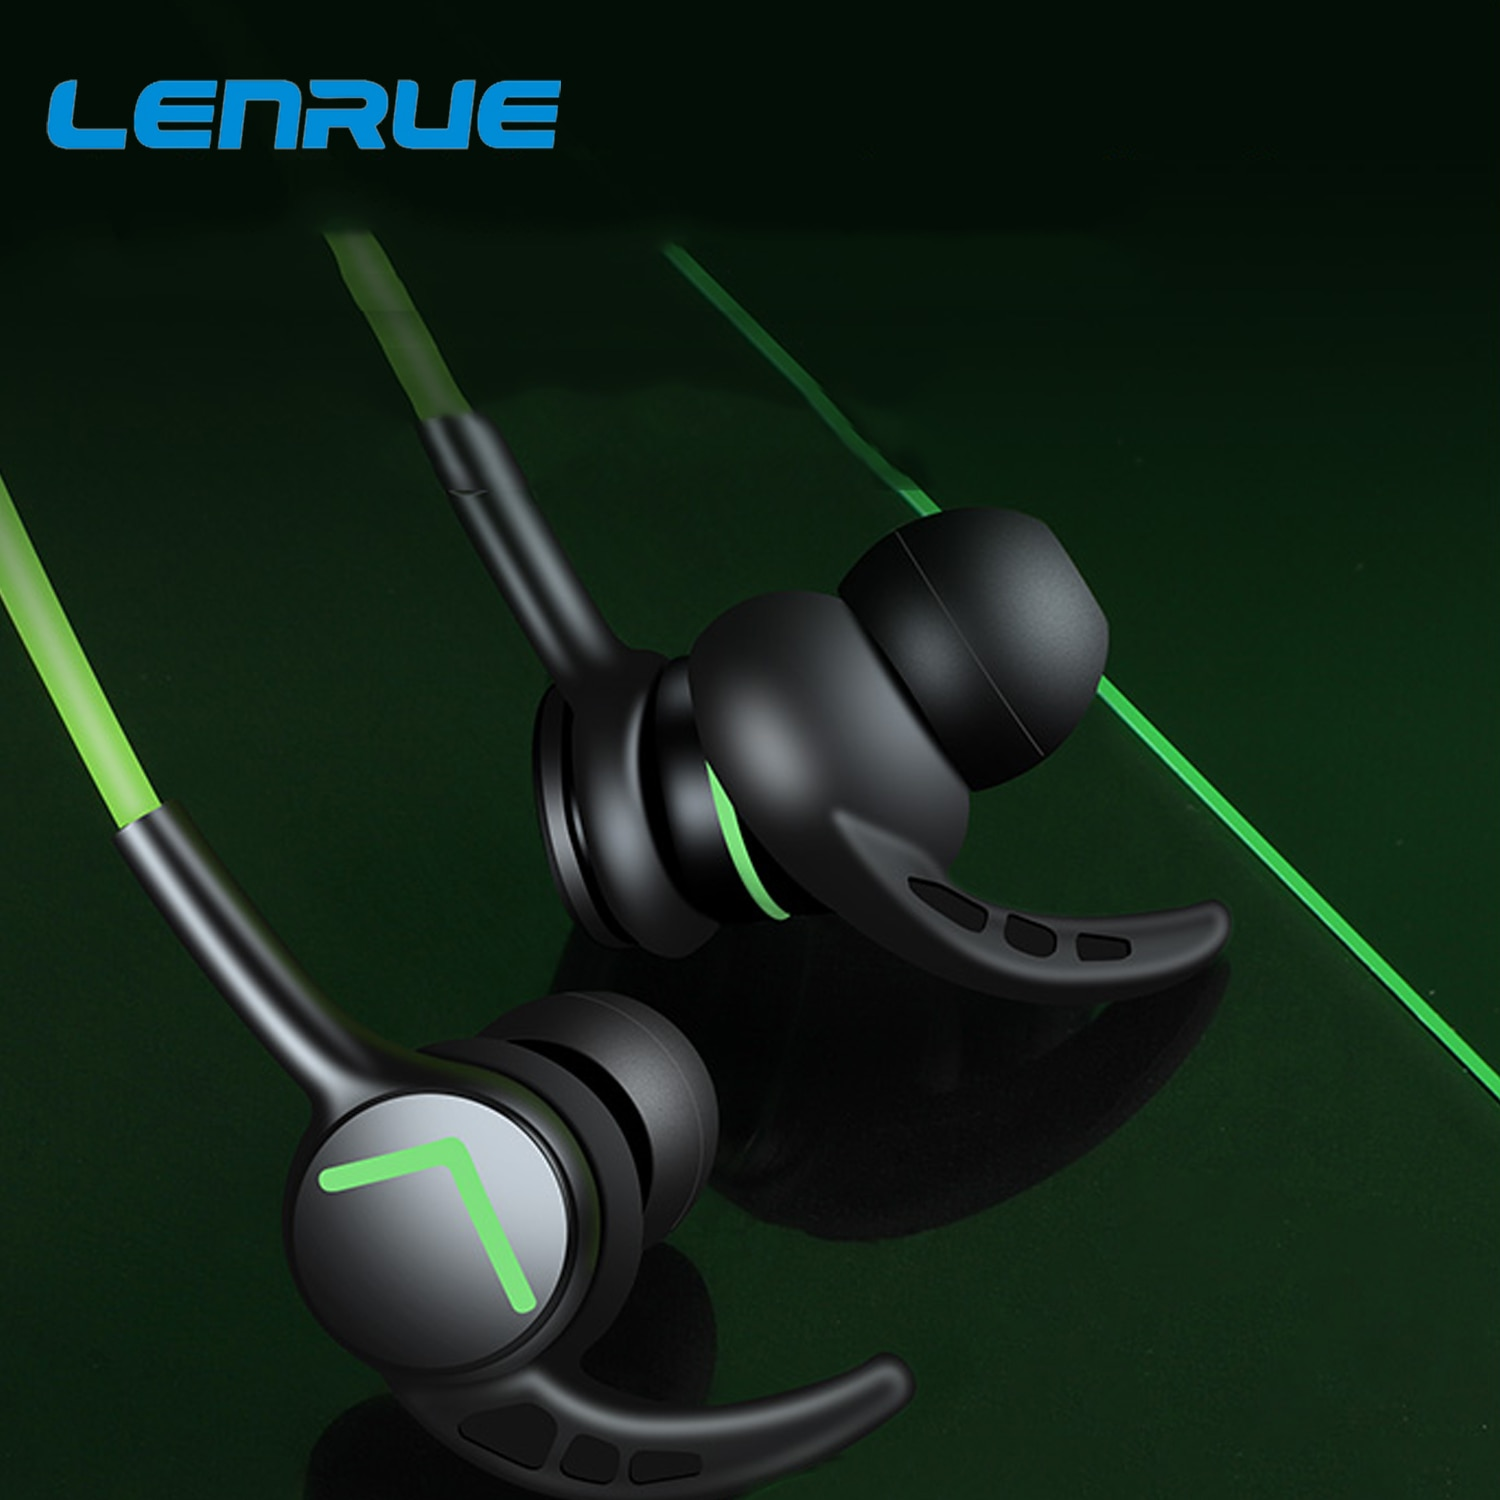 Lenrue A6 Games Earphones Headsets With Built-in Microphone 3.5mm Jack or Type-C In-Ear Wired Earpho